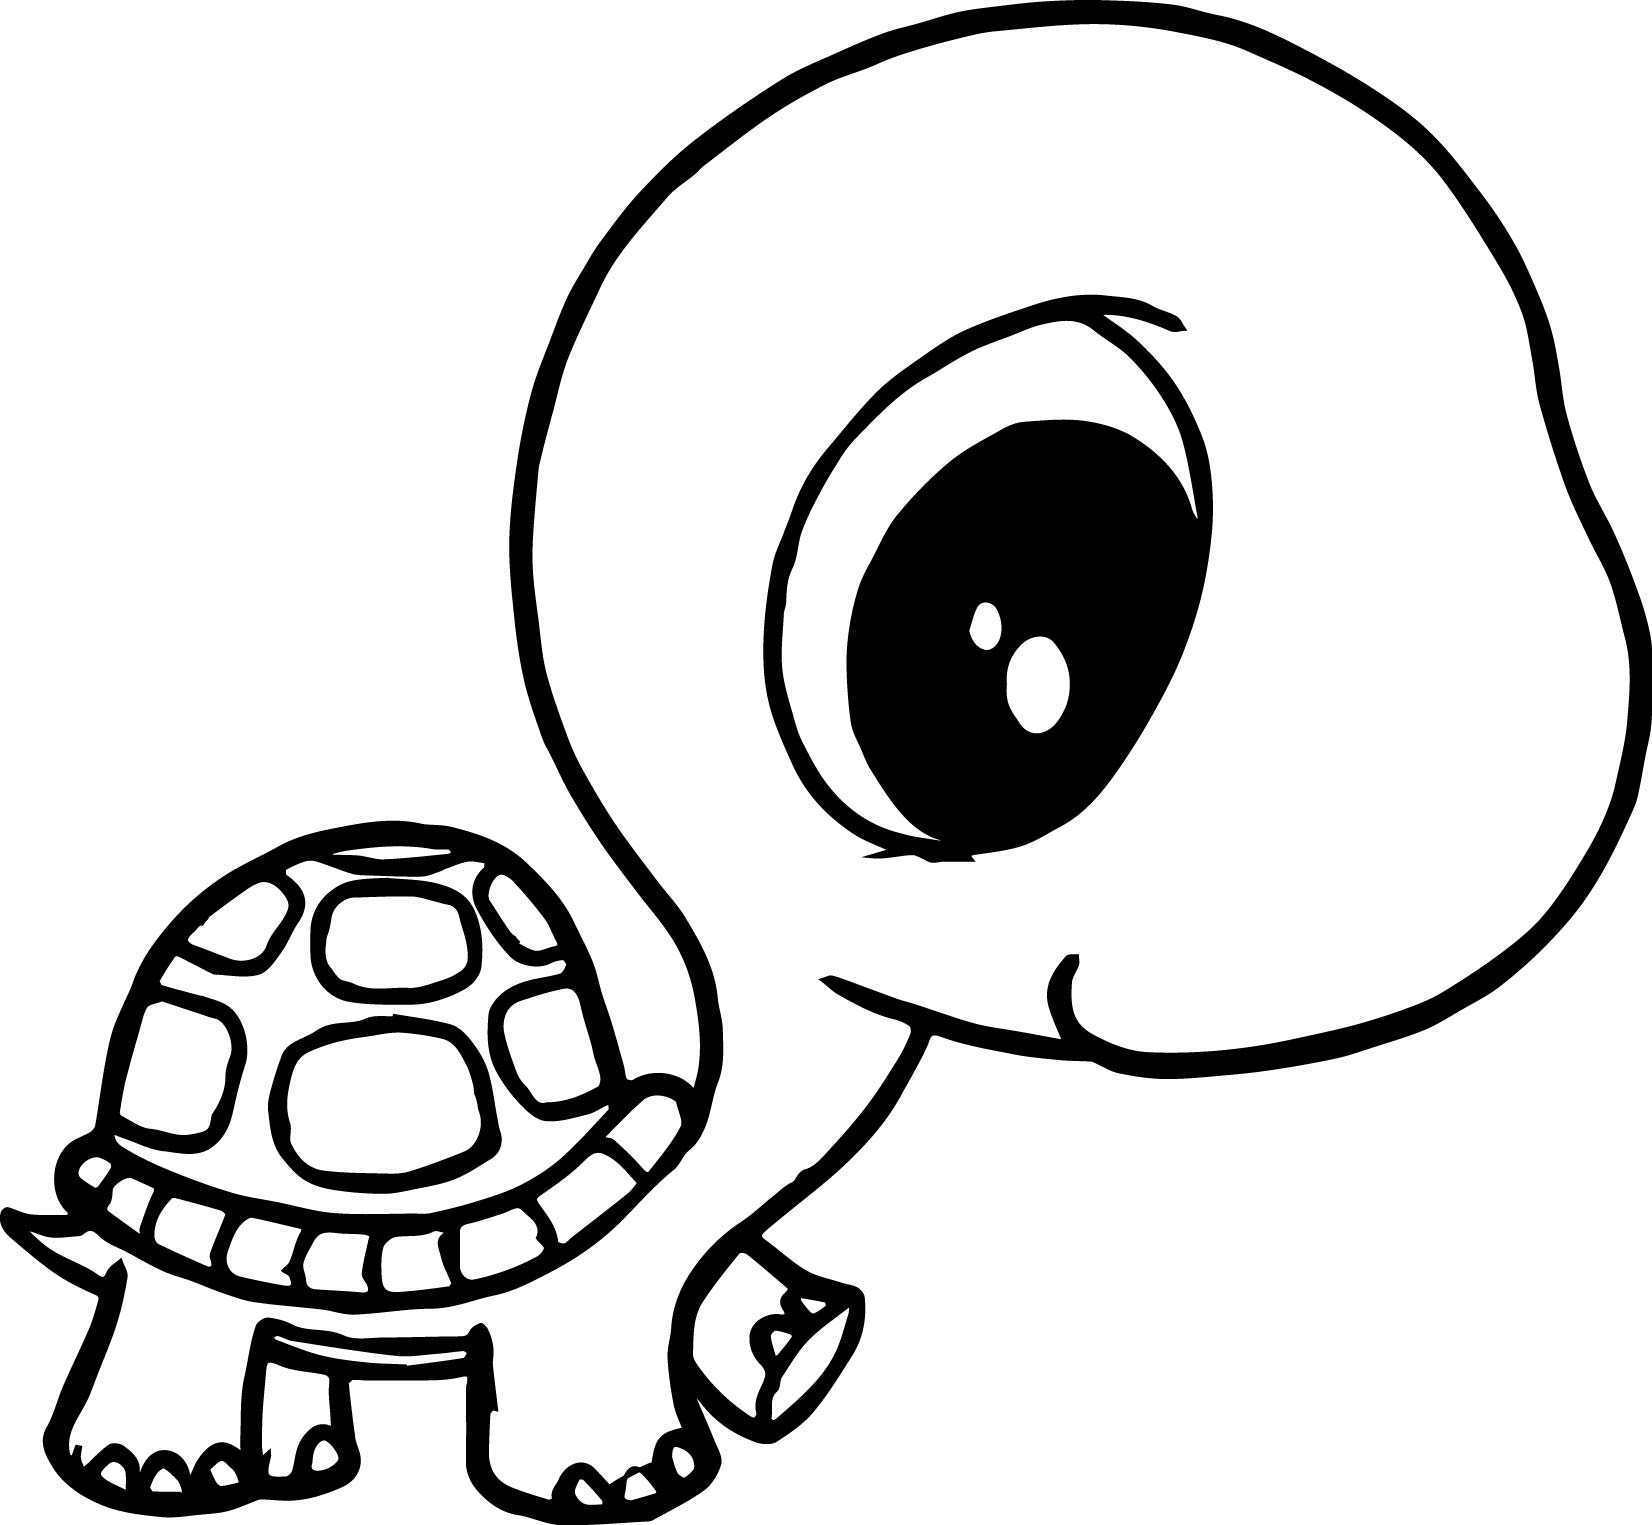 big head small body tortoise turtle coloring page